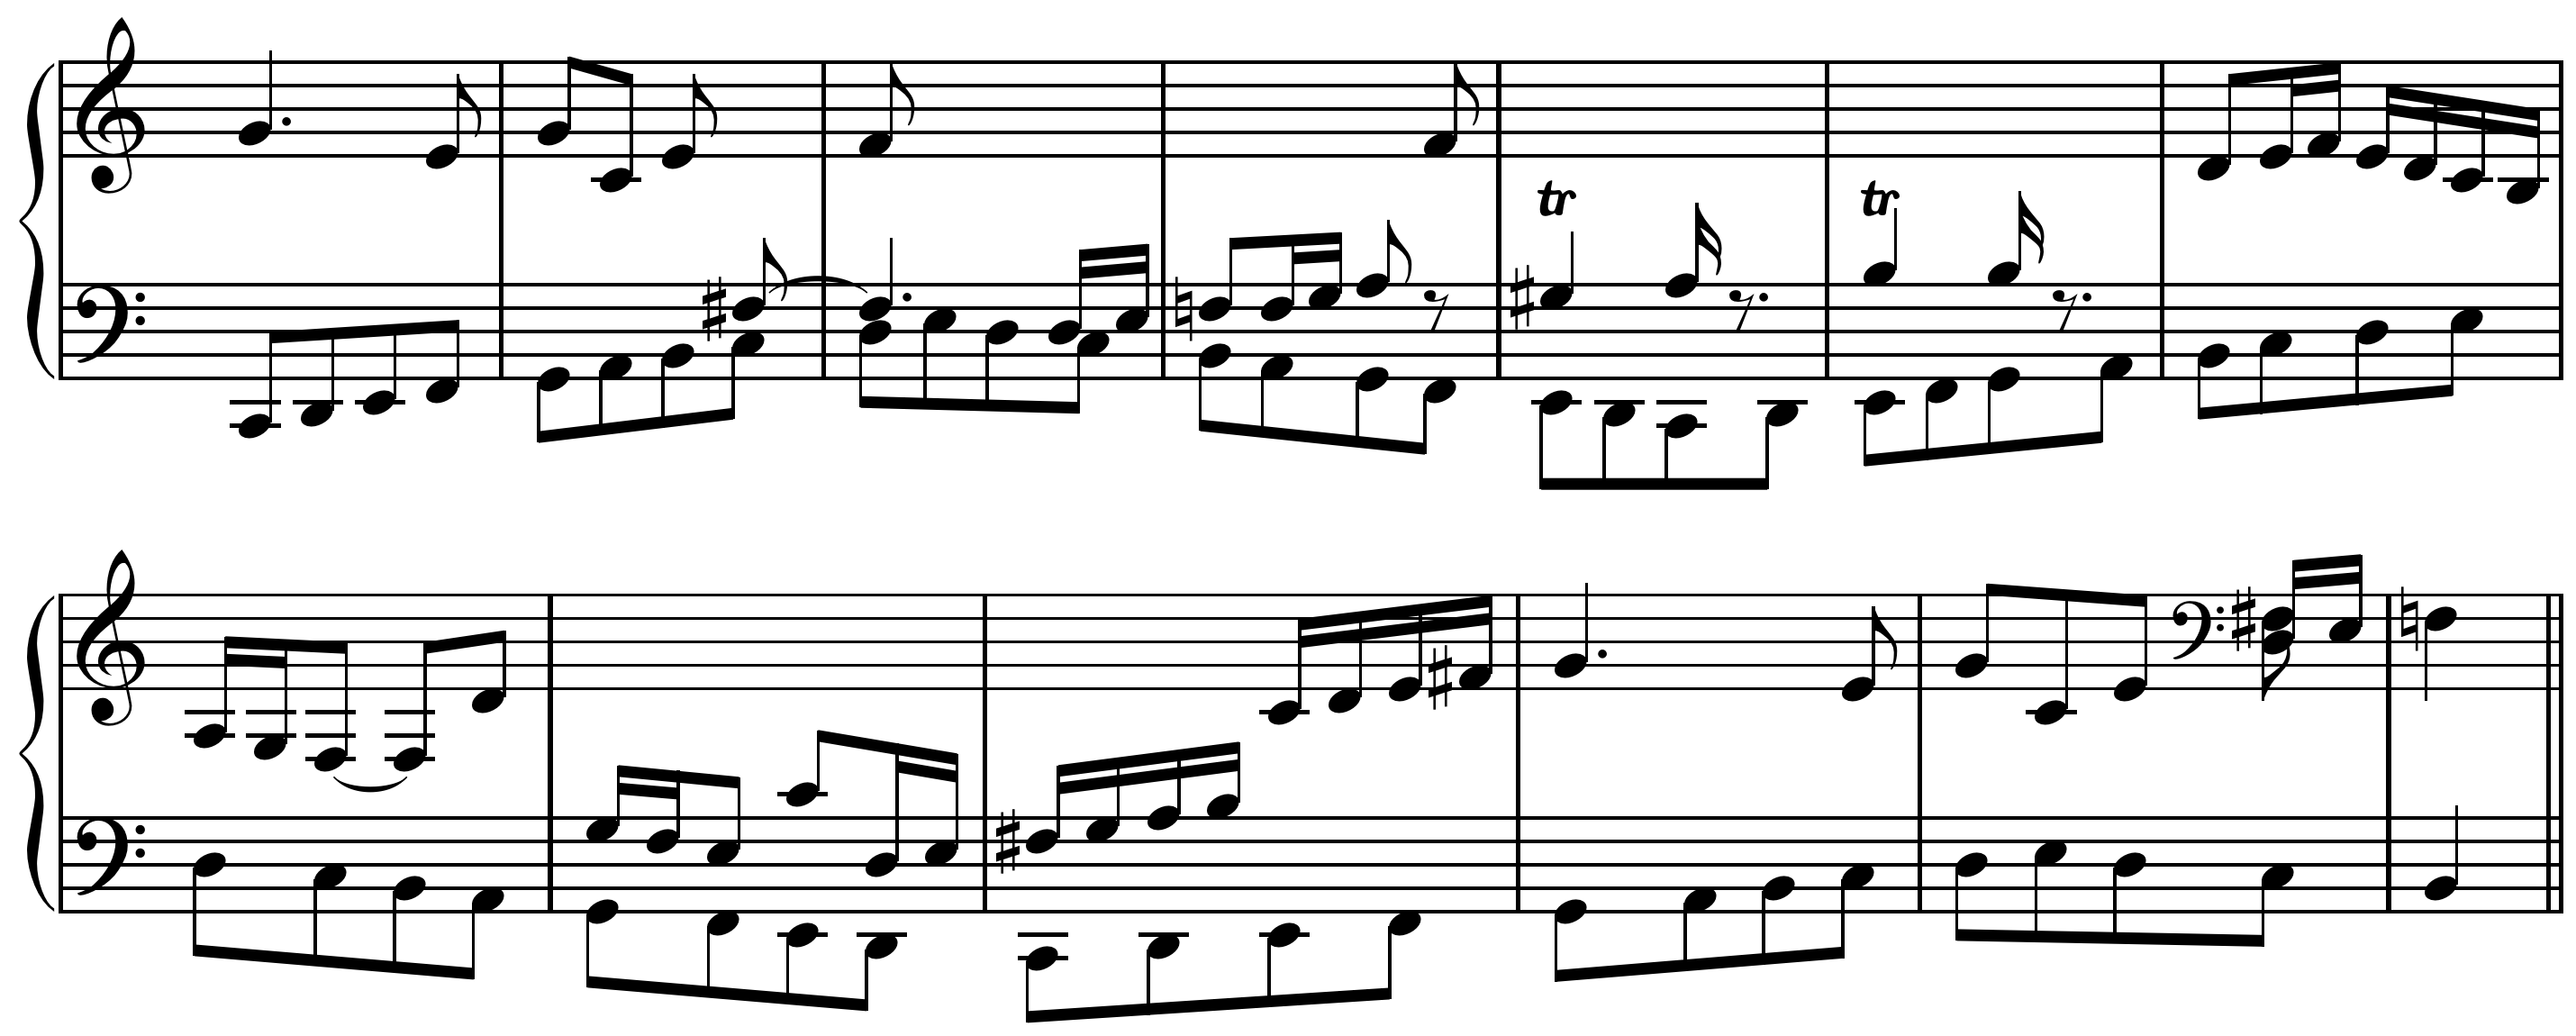 Linear counterpoint from Stravinsky%27s Octet